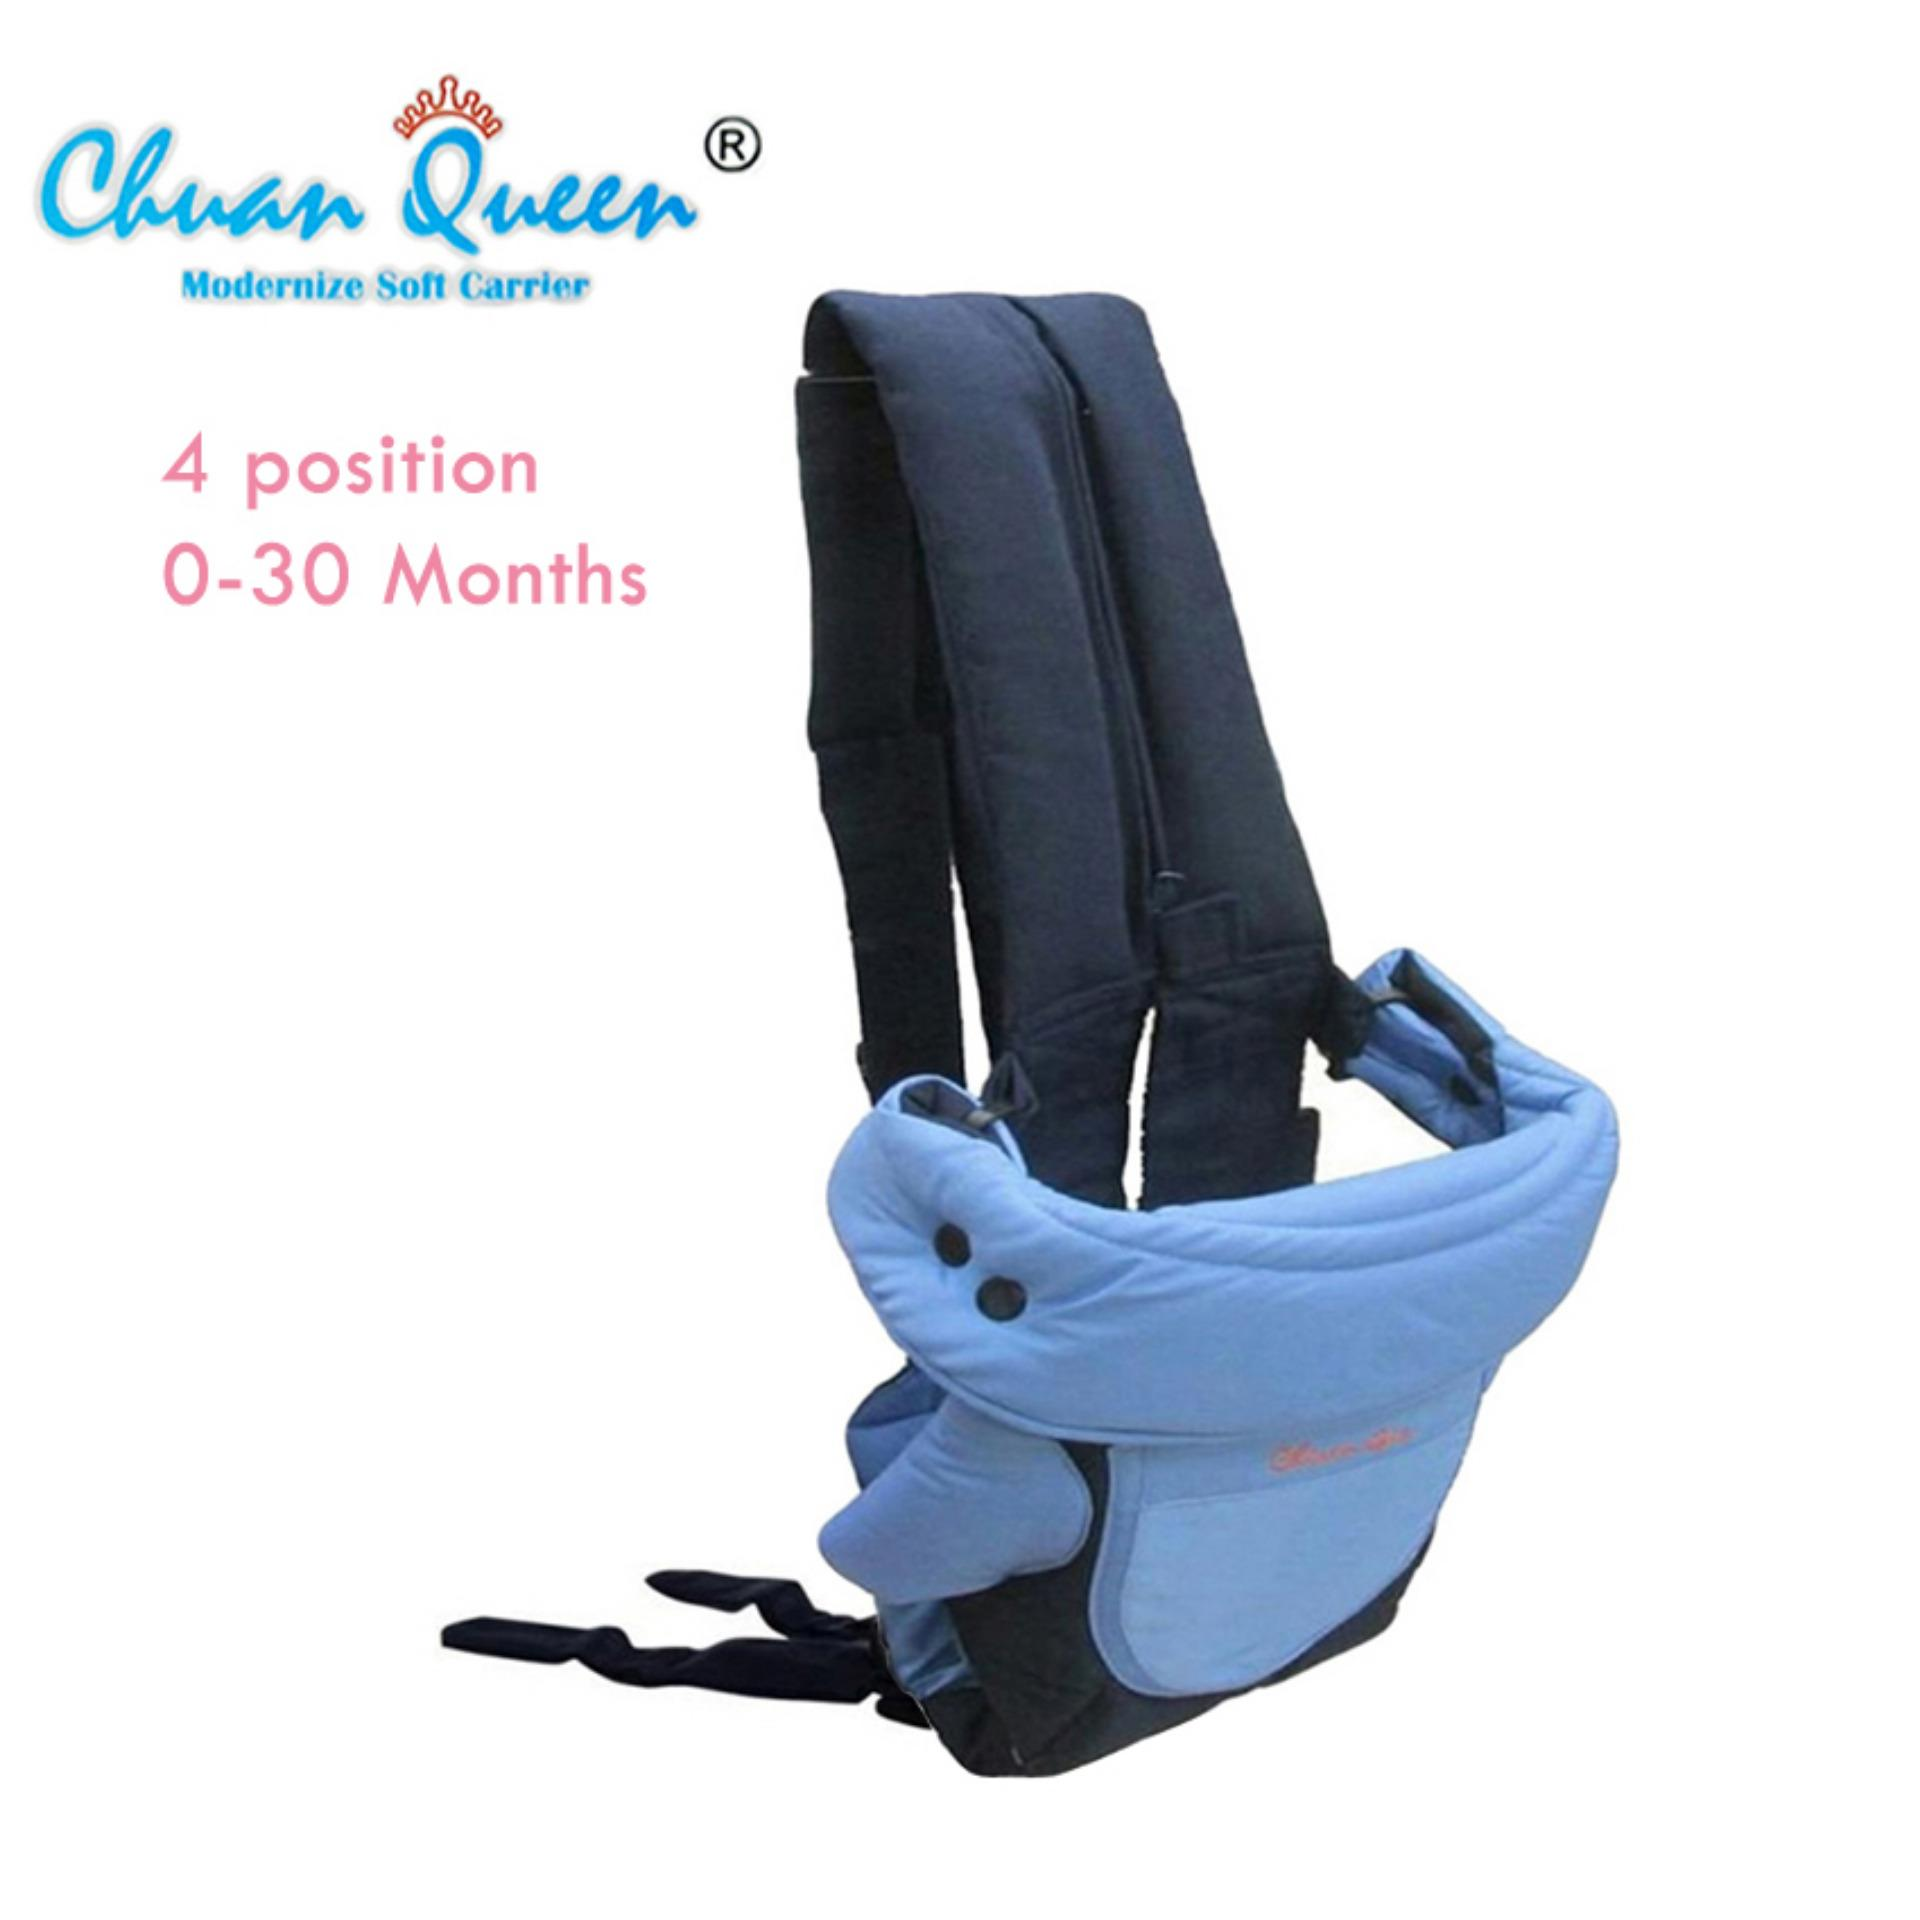 Chuan Queen Baby Carrier 4 In 1 Gendongan Bayi Biru Asli